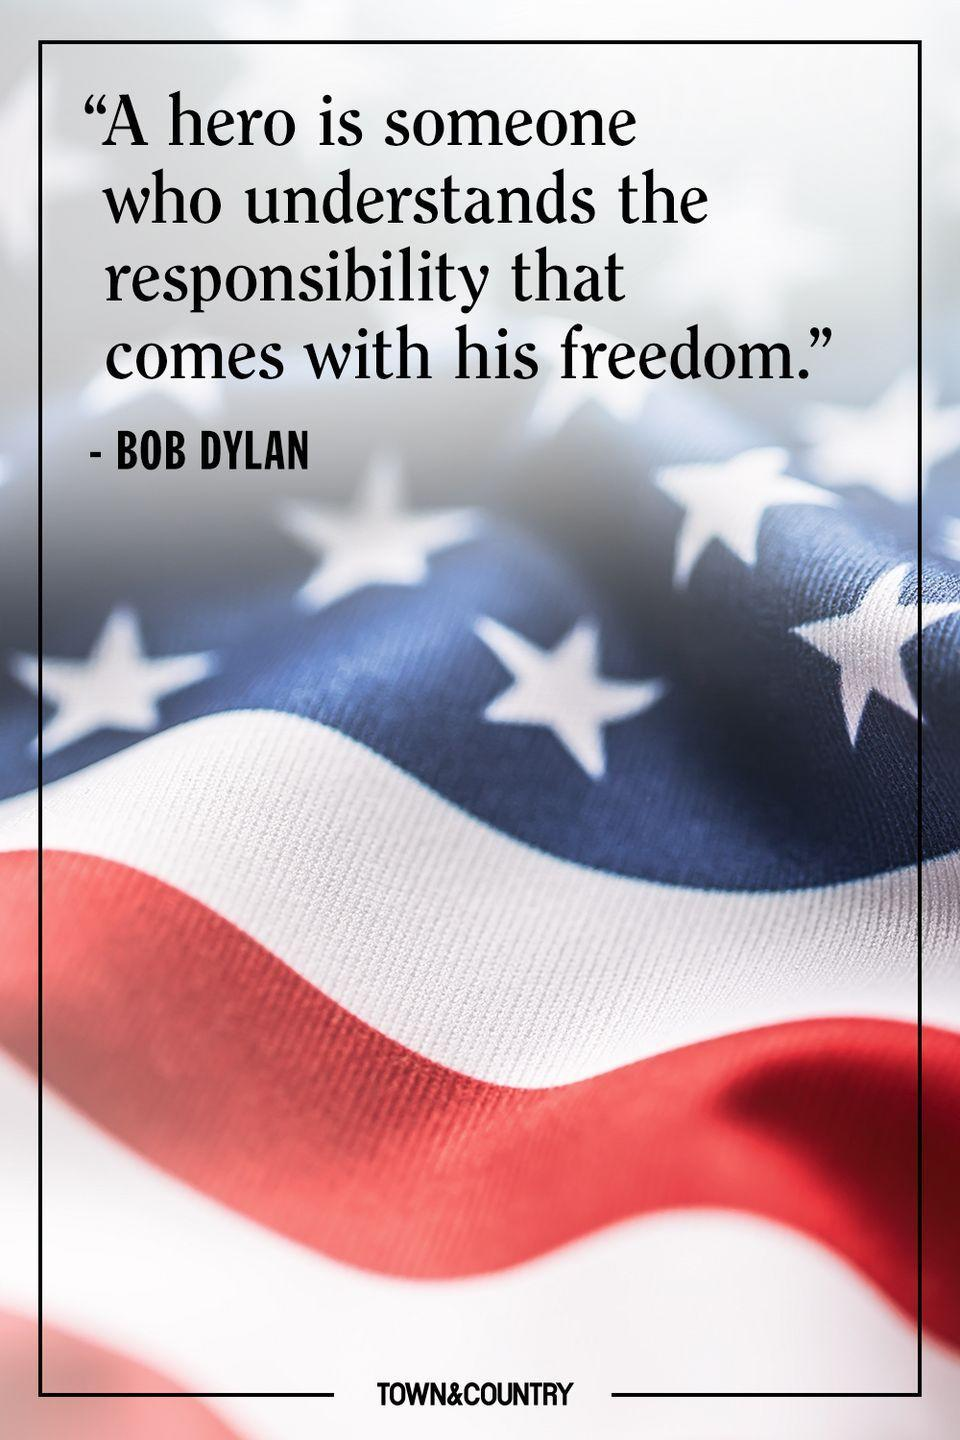 "<p>""A hero is someone who understands the responsibility that comes with his freedom.""</p><p>– Bob Dylan</p>"